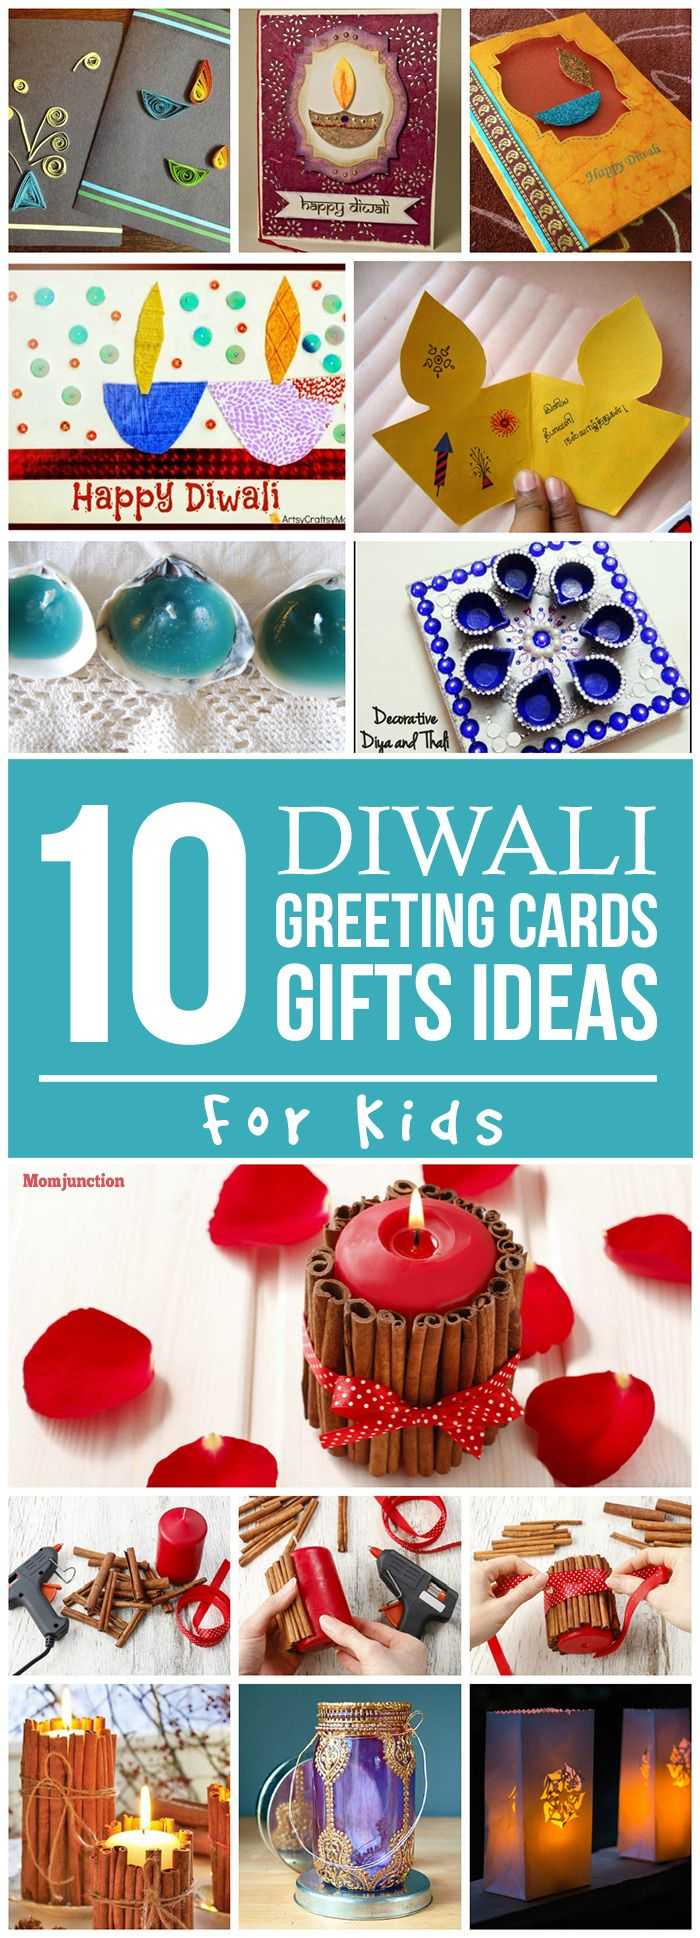 Top 10 Diwali Greeting Cards & Gifts Ideas For Kids